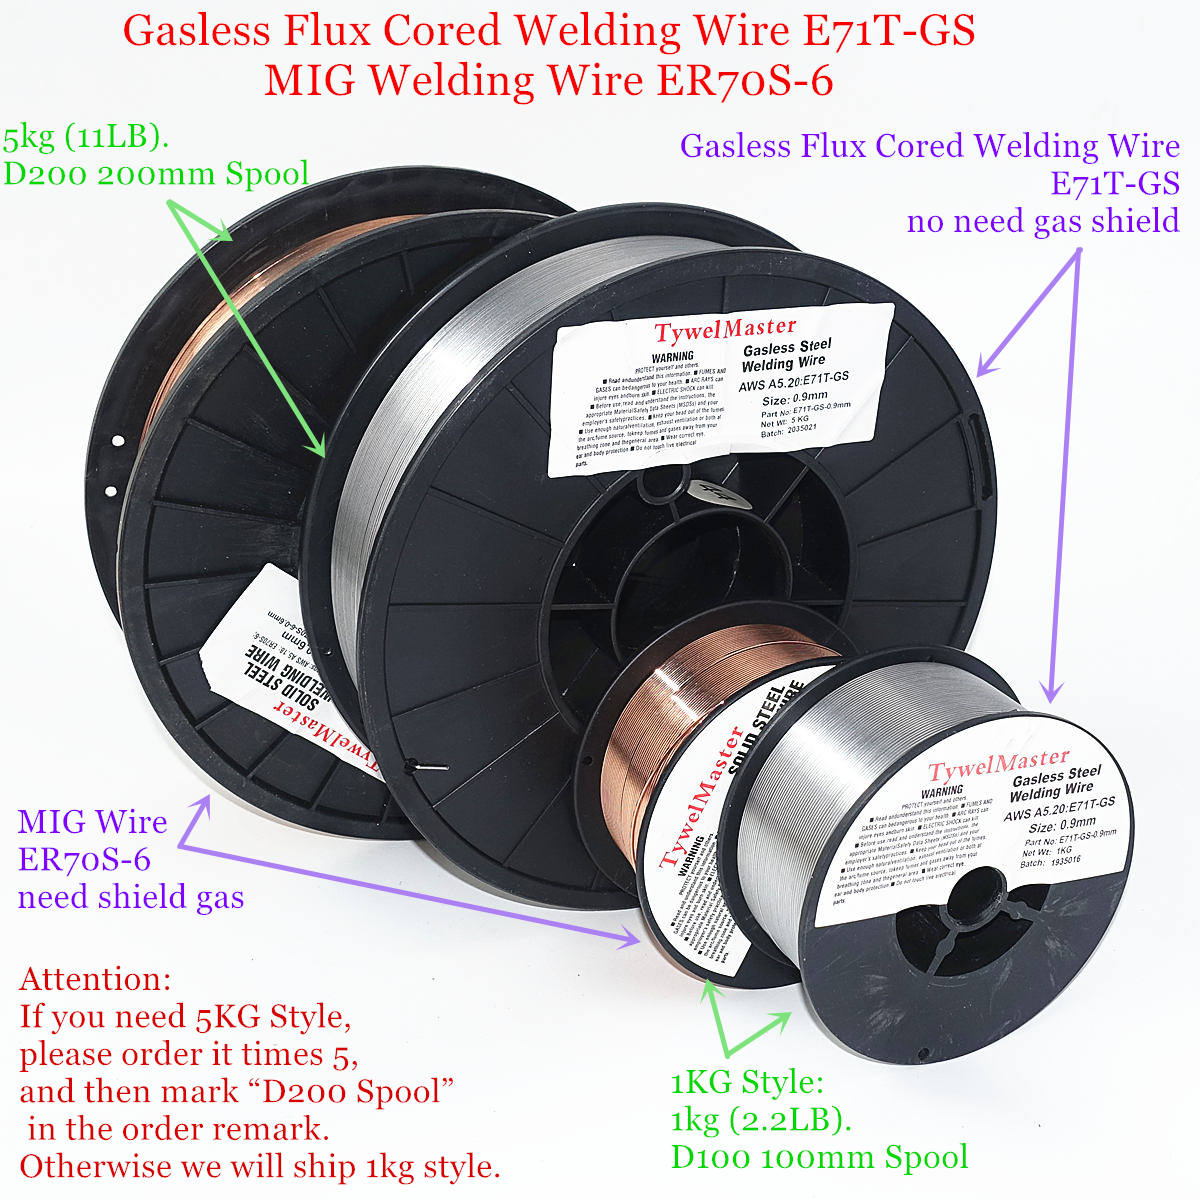 Flux Cored Gasless Welding Wire E71T-GS No Gas Or MIG Welding Wire ER70S-6 0.6/0.8/0.9mm 1kg Steel Welding Material